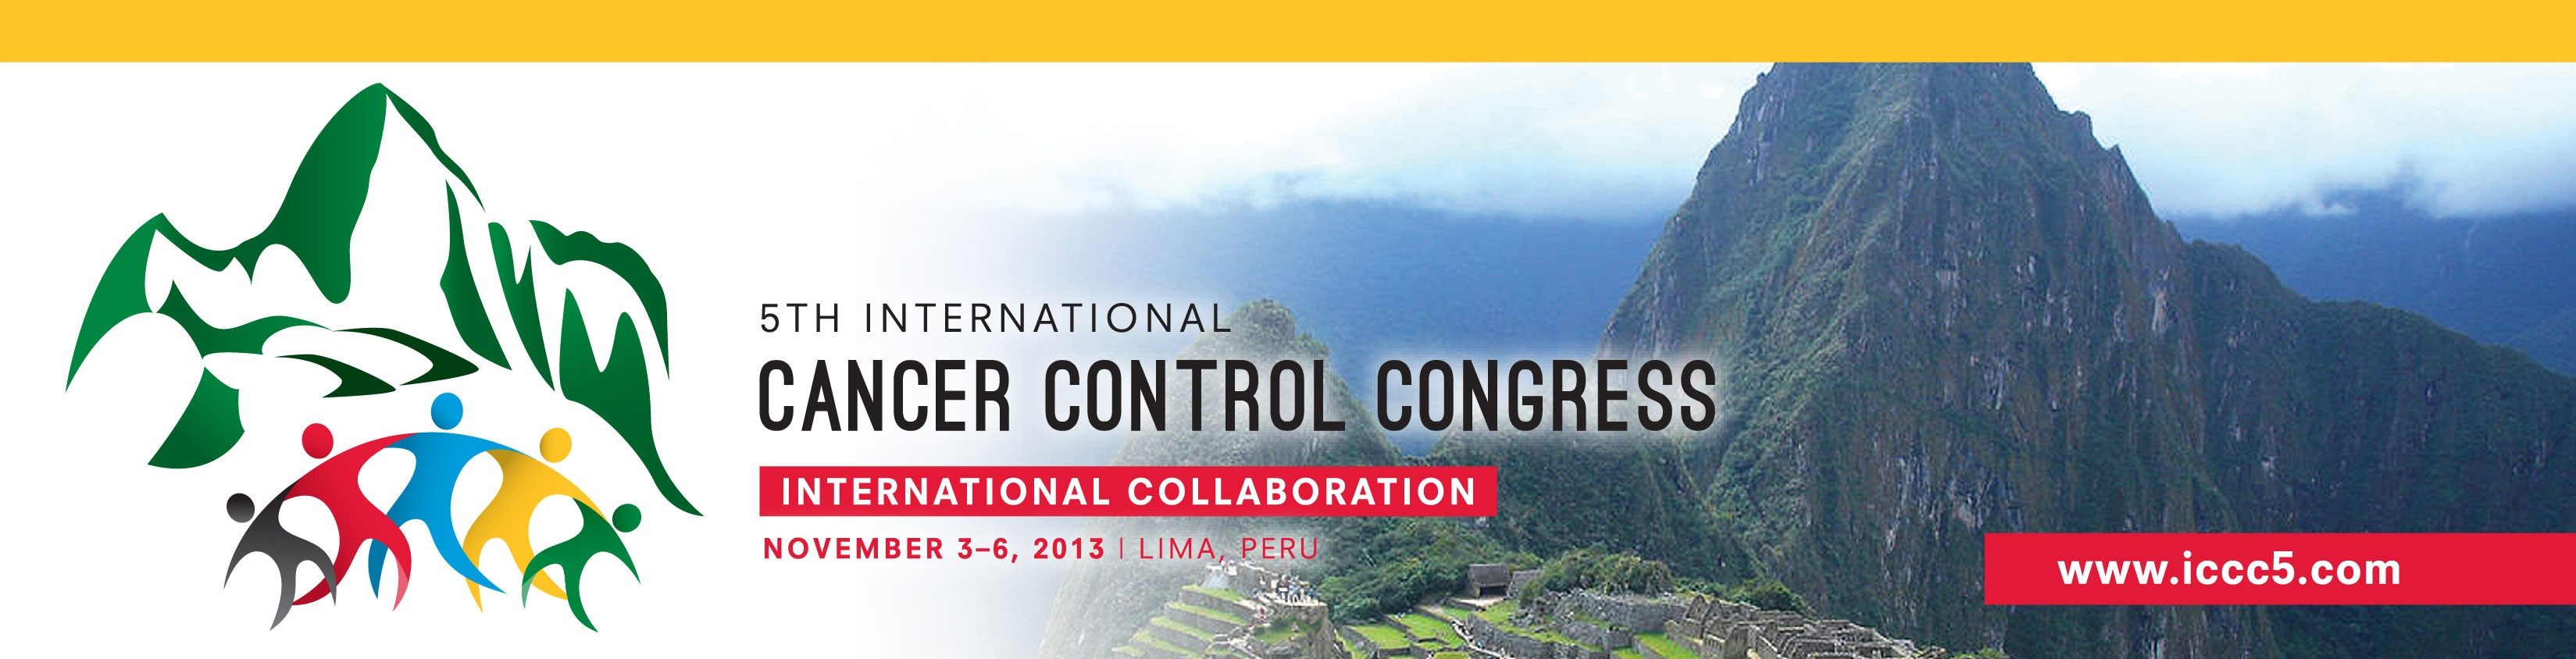 5th International Cancer Control Congress